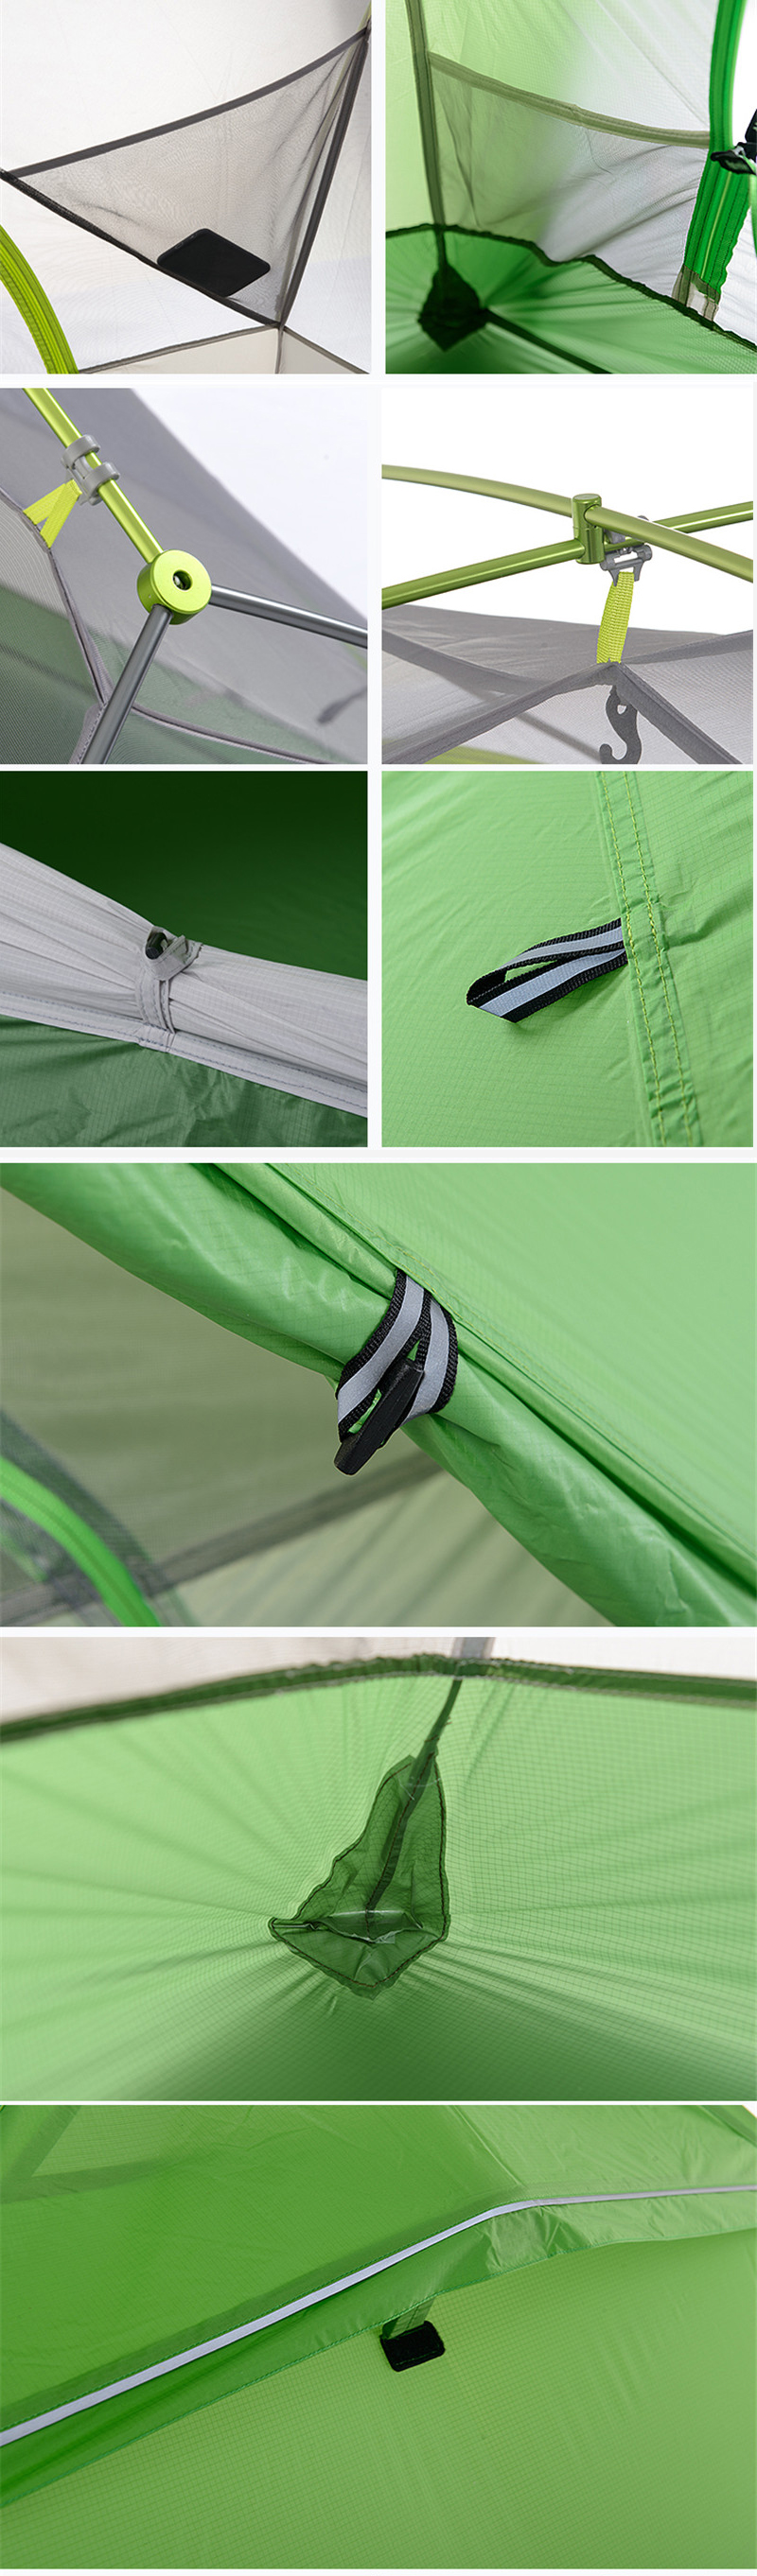 be562987e0f Naturehike Star River Tent 20D Silicone Fabric Ultralight 2 Person ...